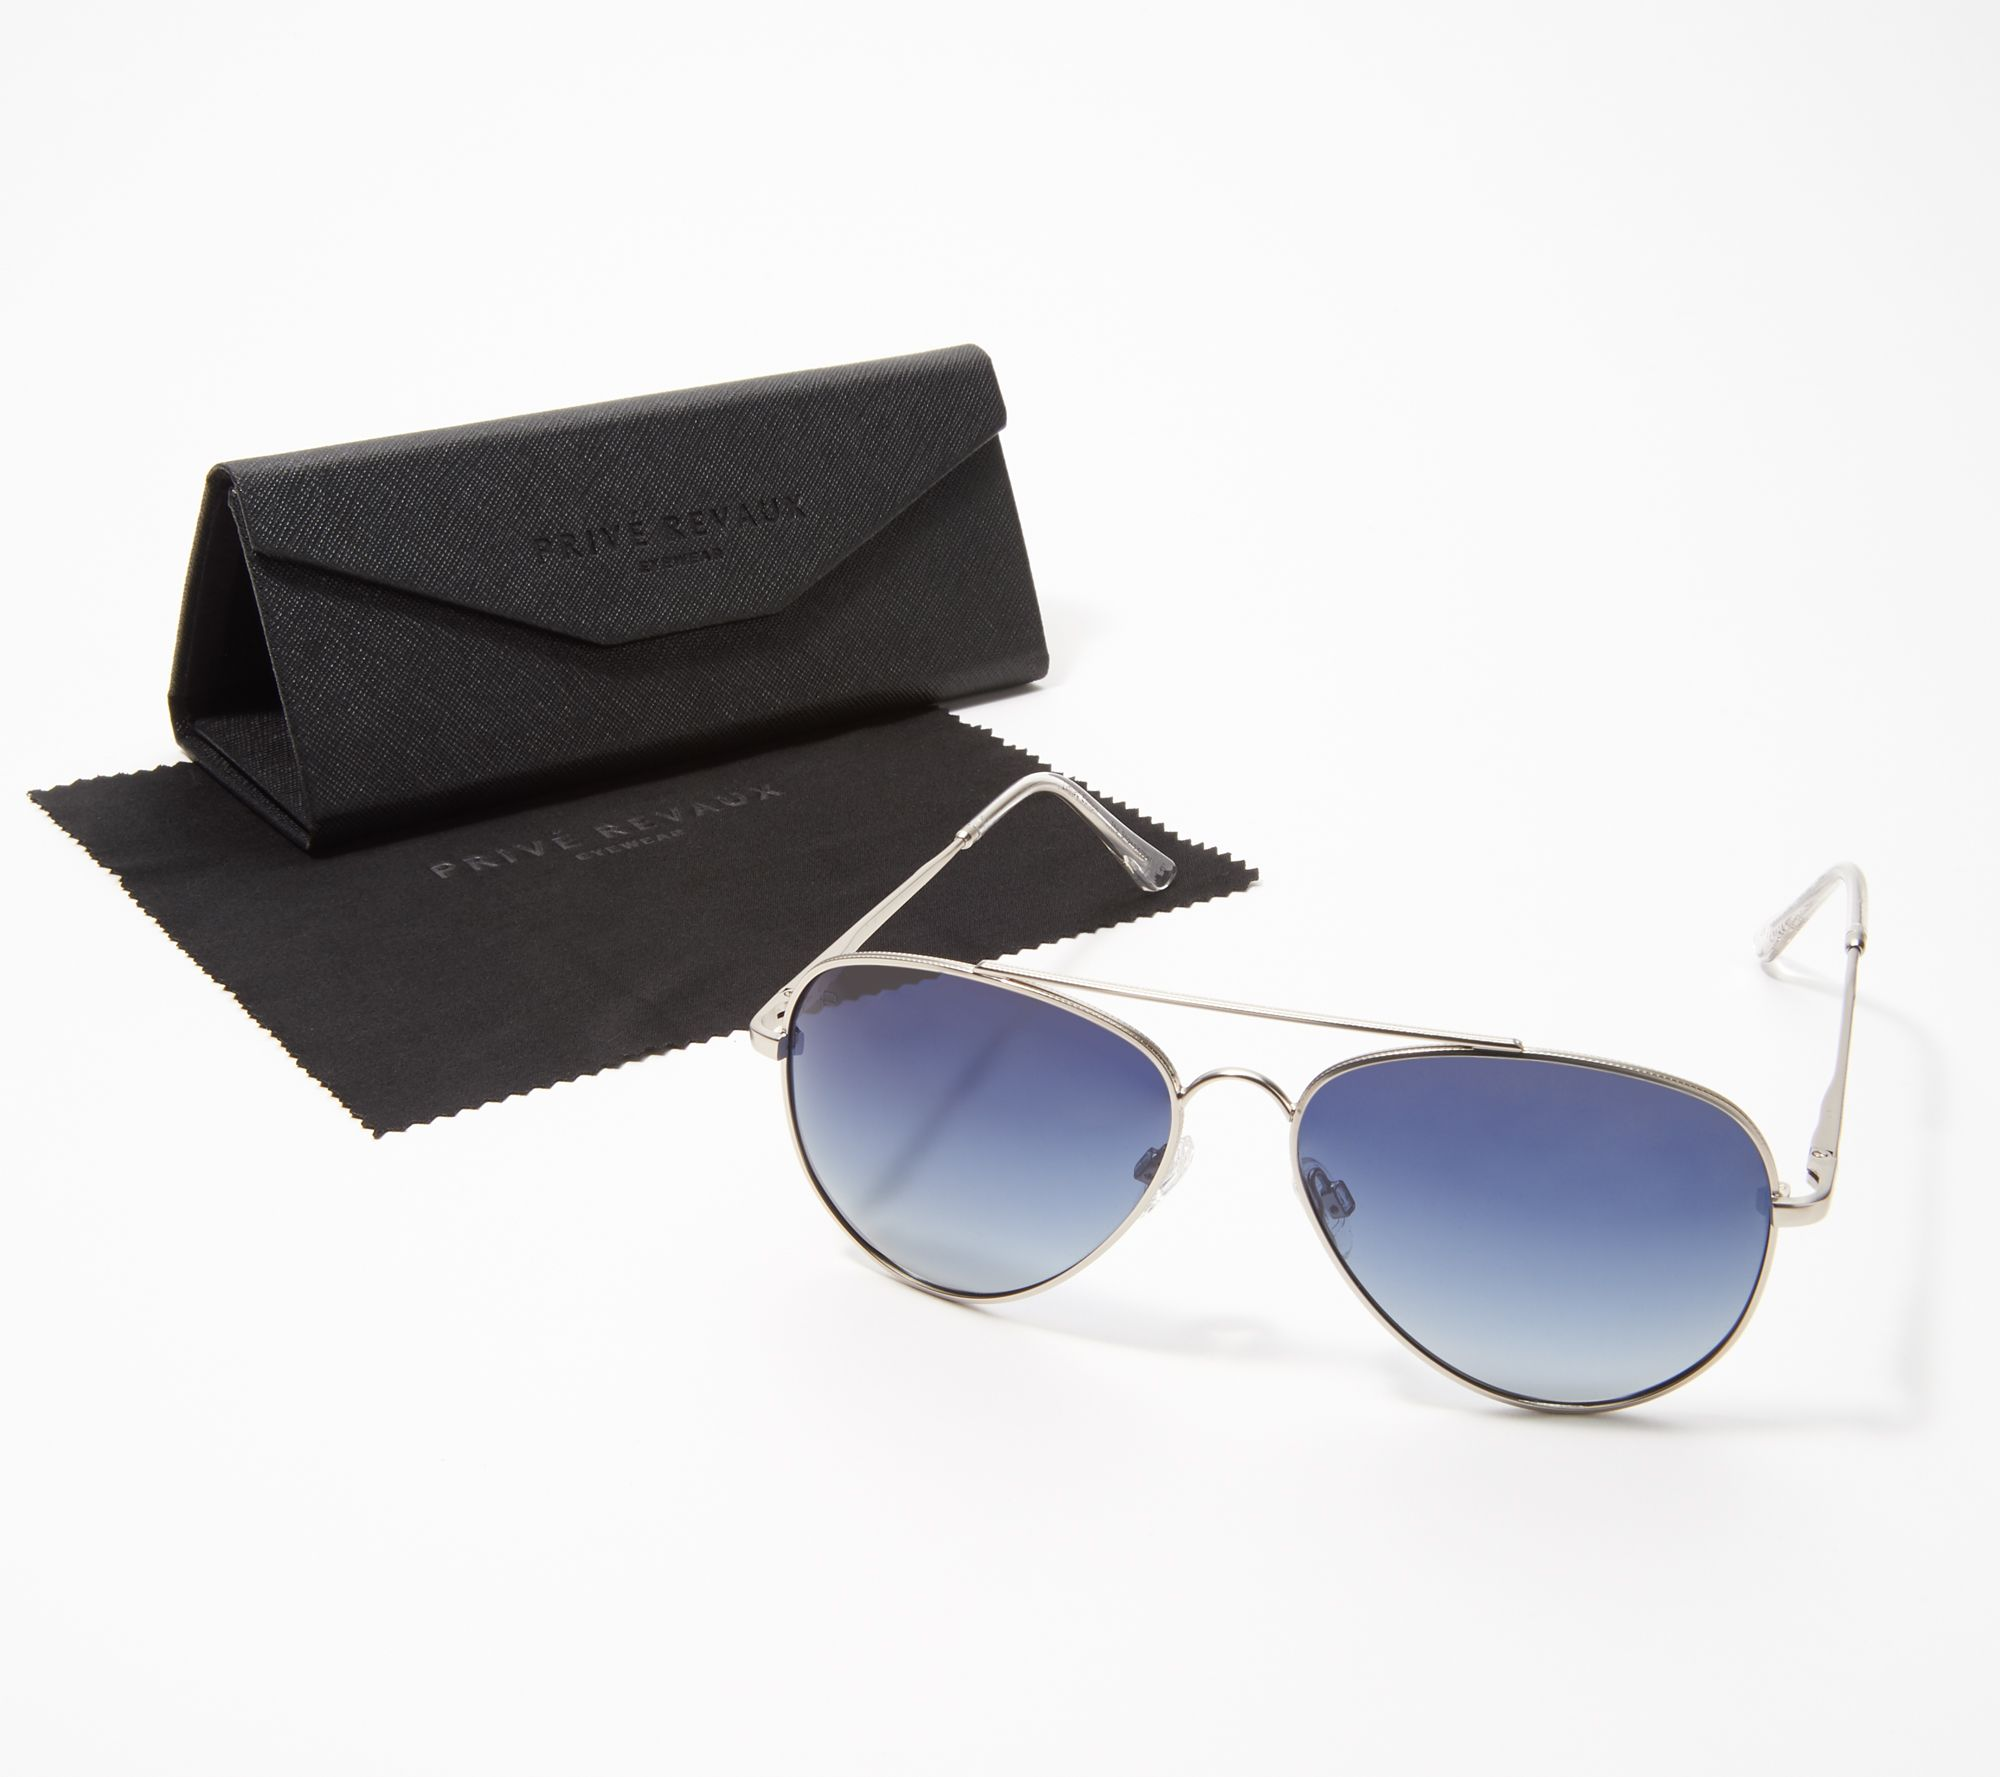 8fdee975eb Prive Revaux The Showstopper Polarized Sunglasses - Page 1 — QVC.com